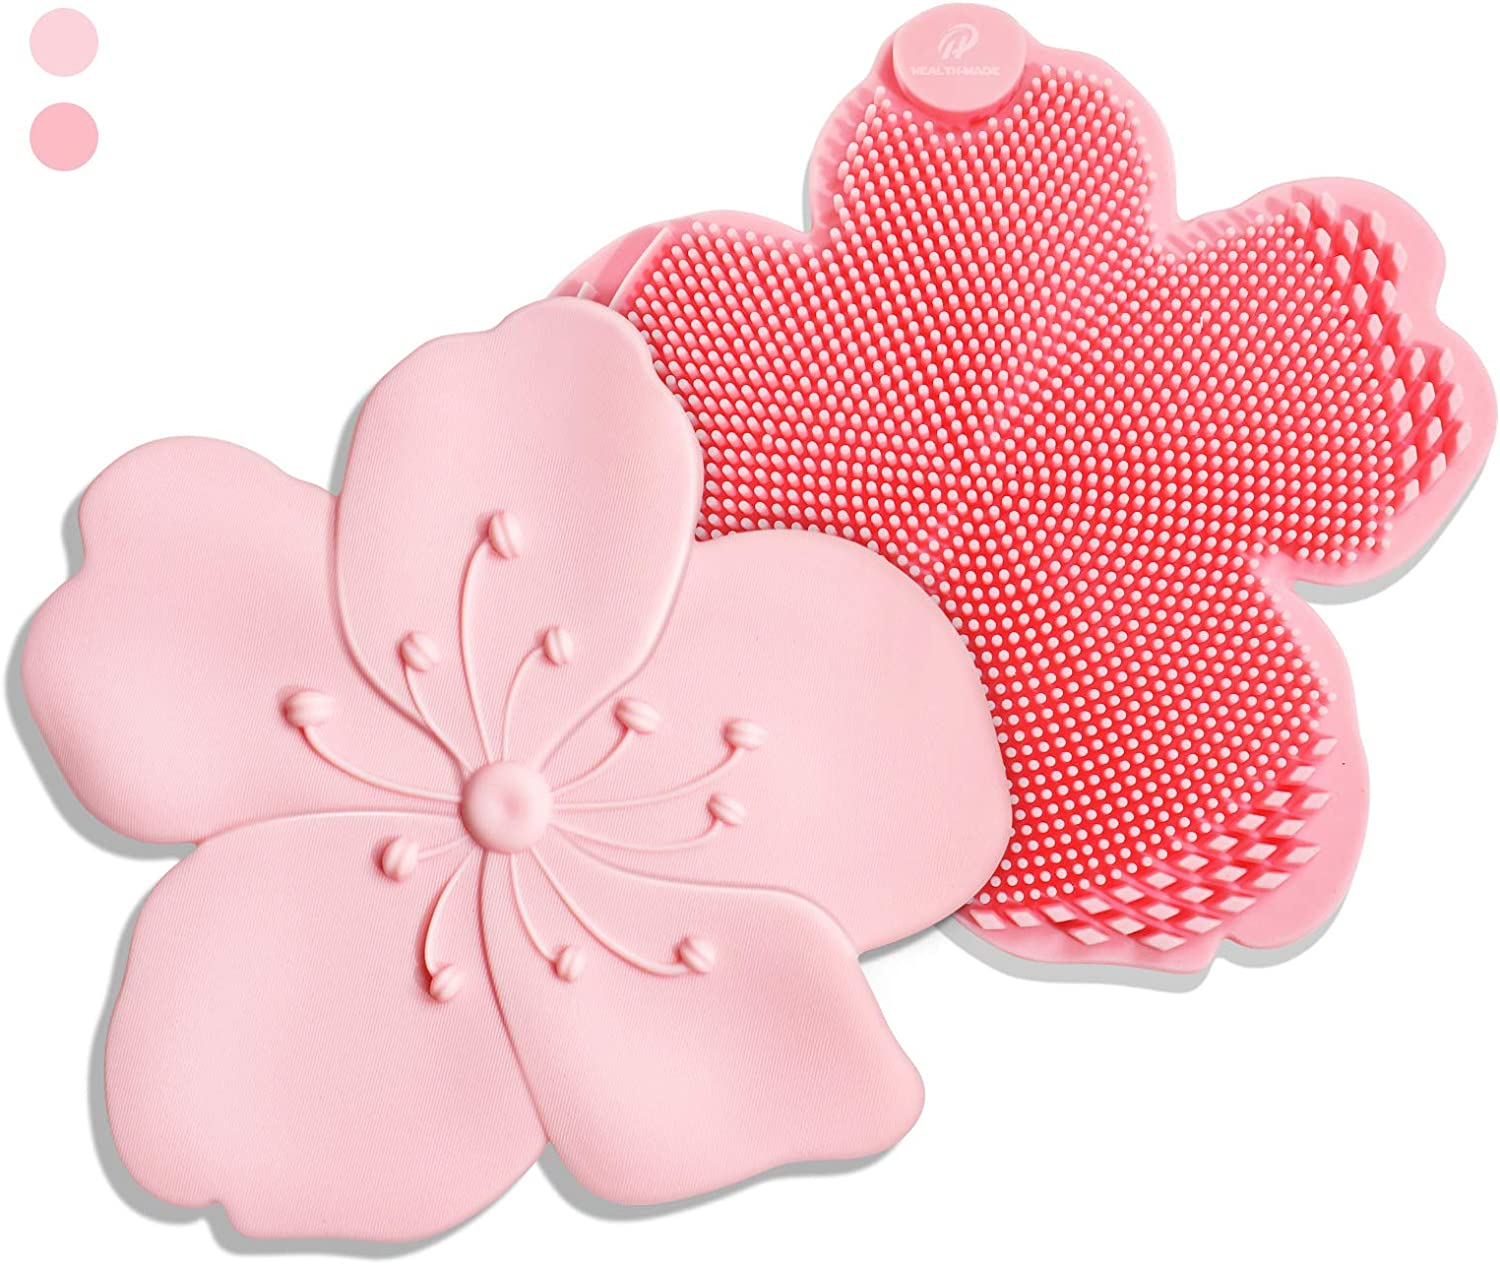 Silicone Dish Sponge and Scrubber, Multifunctional Magnetic Kitchen Sponge, 7 in 1 Reusable Sakura Shaped Silicone Cleaning Brush for Kitchen, Pink/Rose (2 Pack)